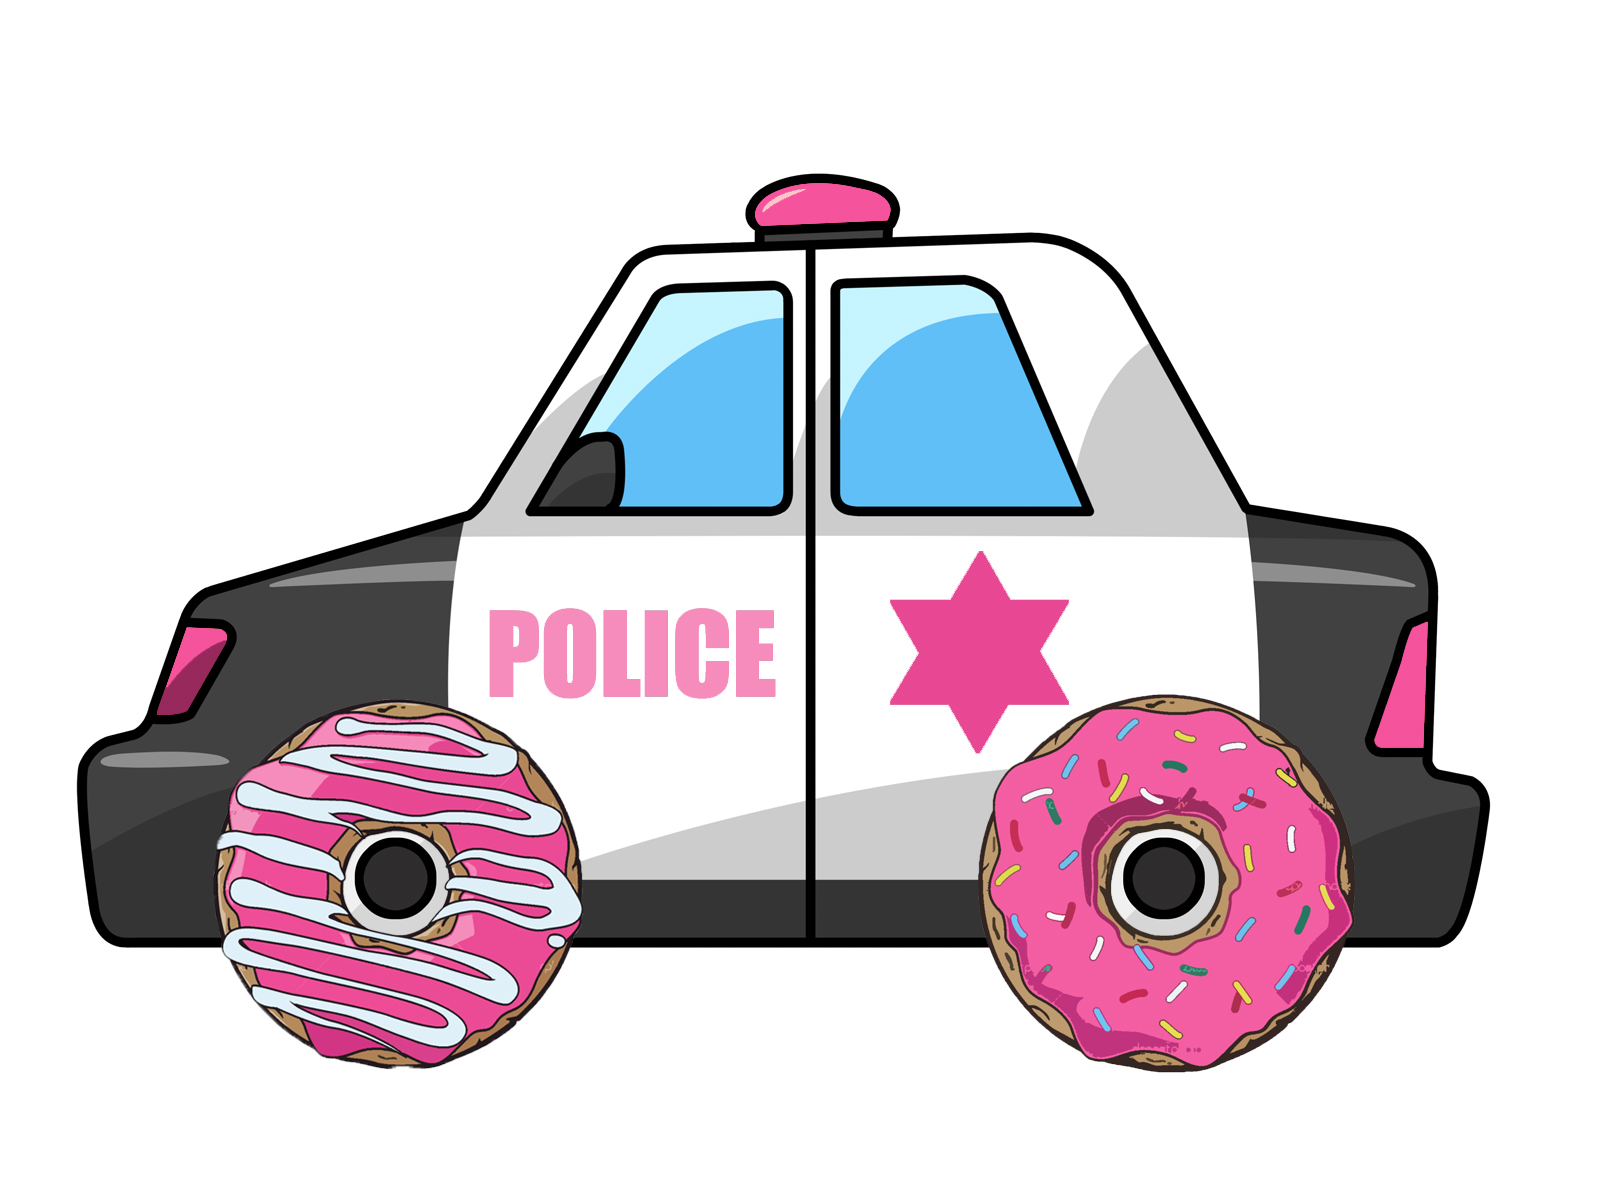 Police car cartoon clipart graphic freeuse download Police Car Cartoon - ClipArt Best graphic freeuse download